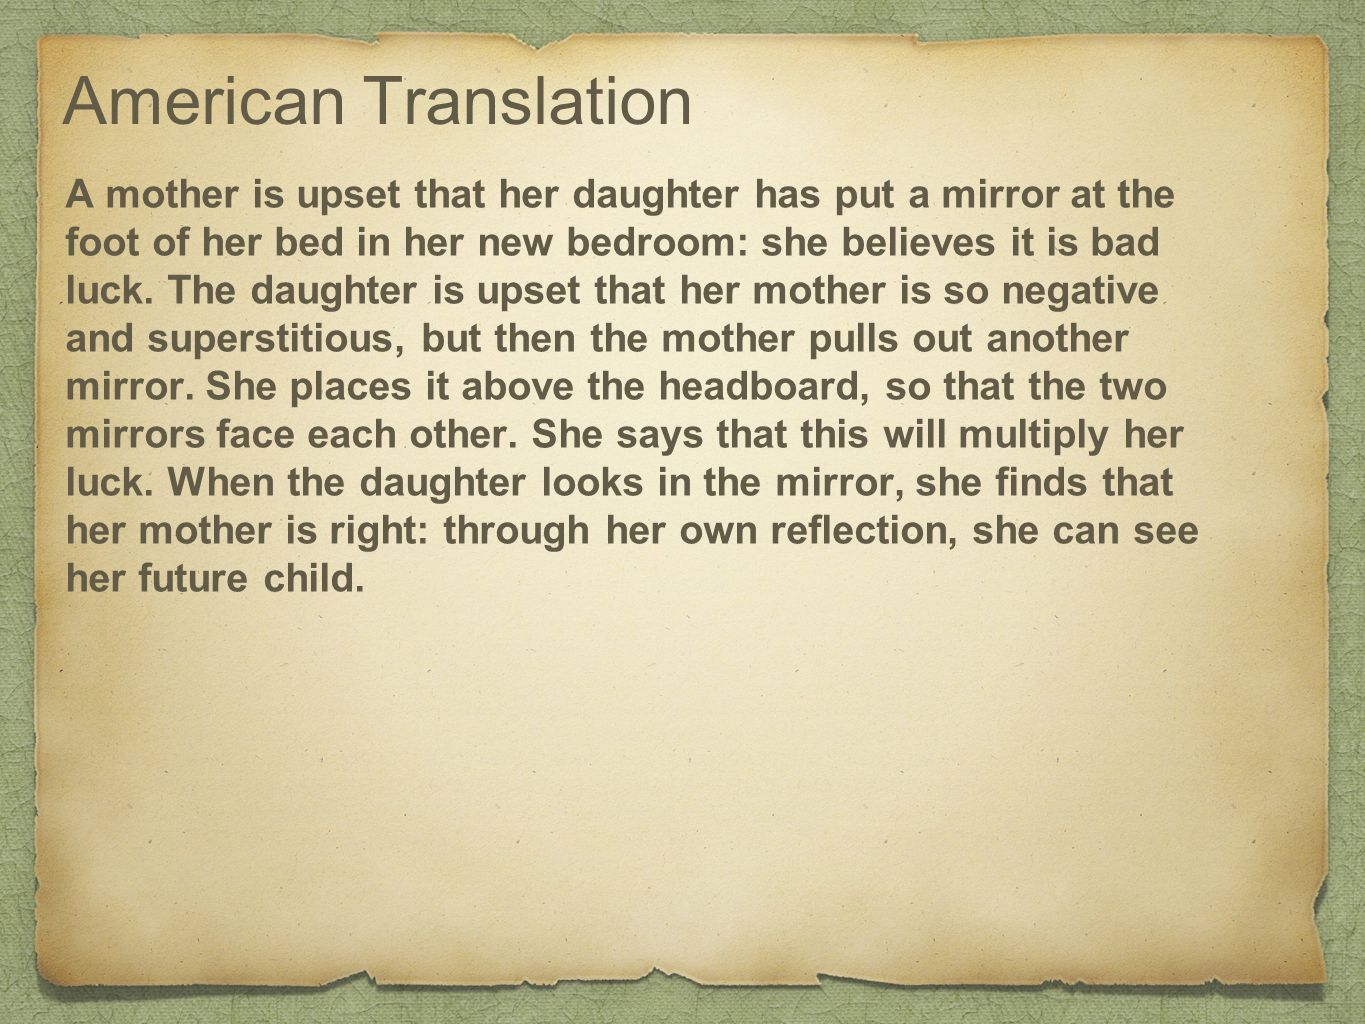 Mirrors In Bedroom Superstition American Translation Ppt Download